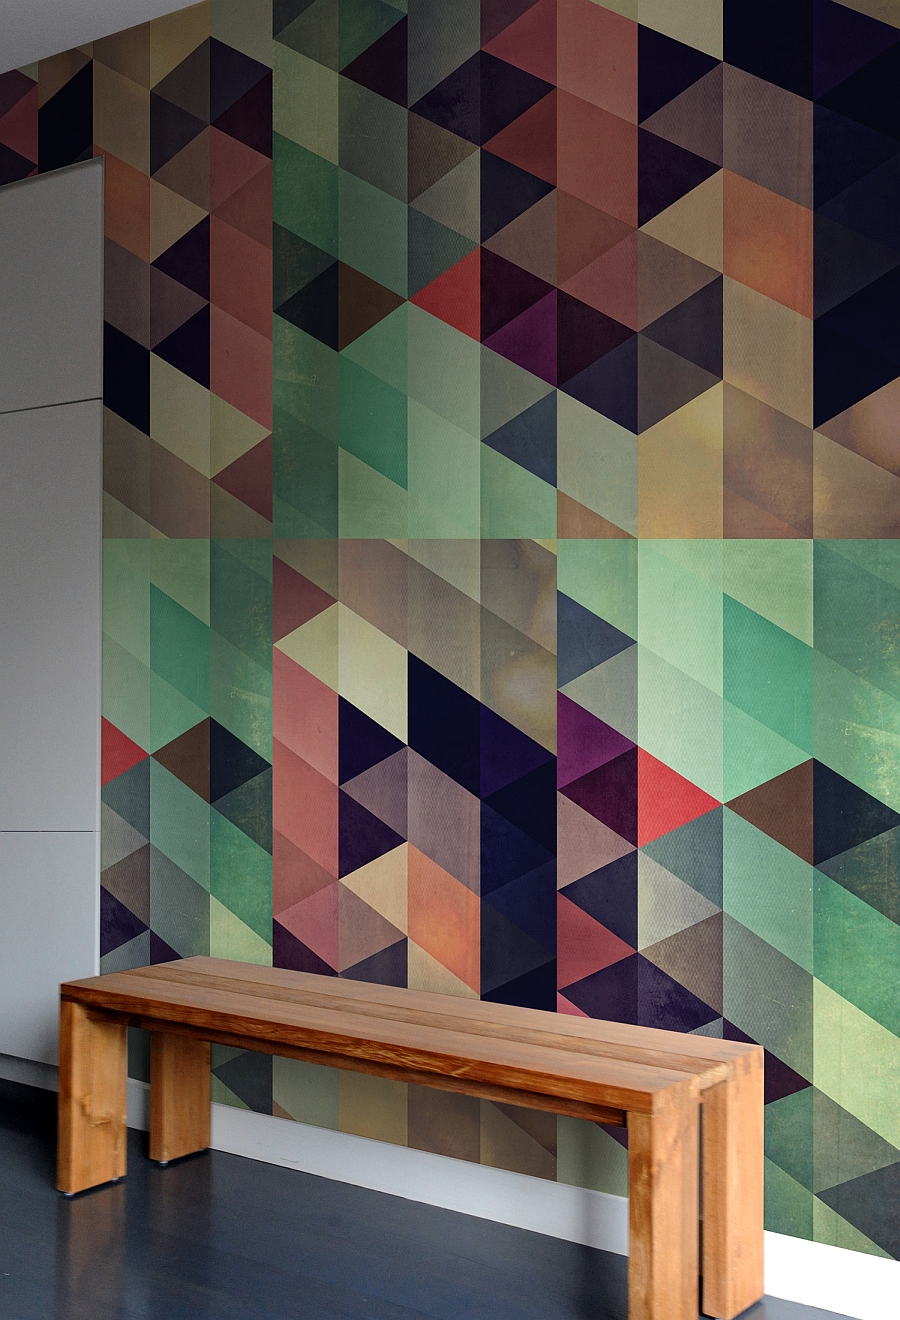 View in gallery Creative and colorful wall tile designs